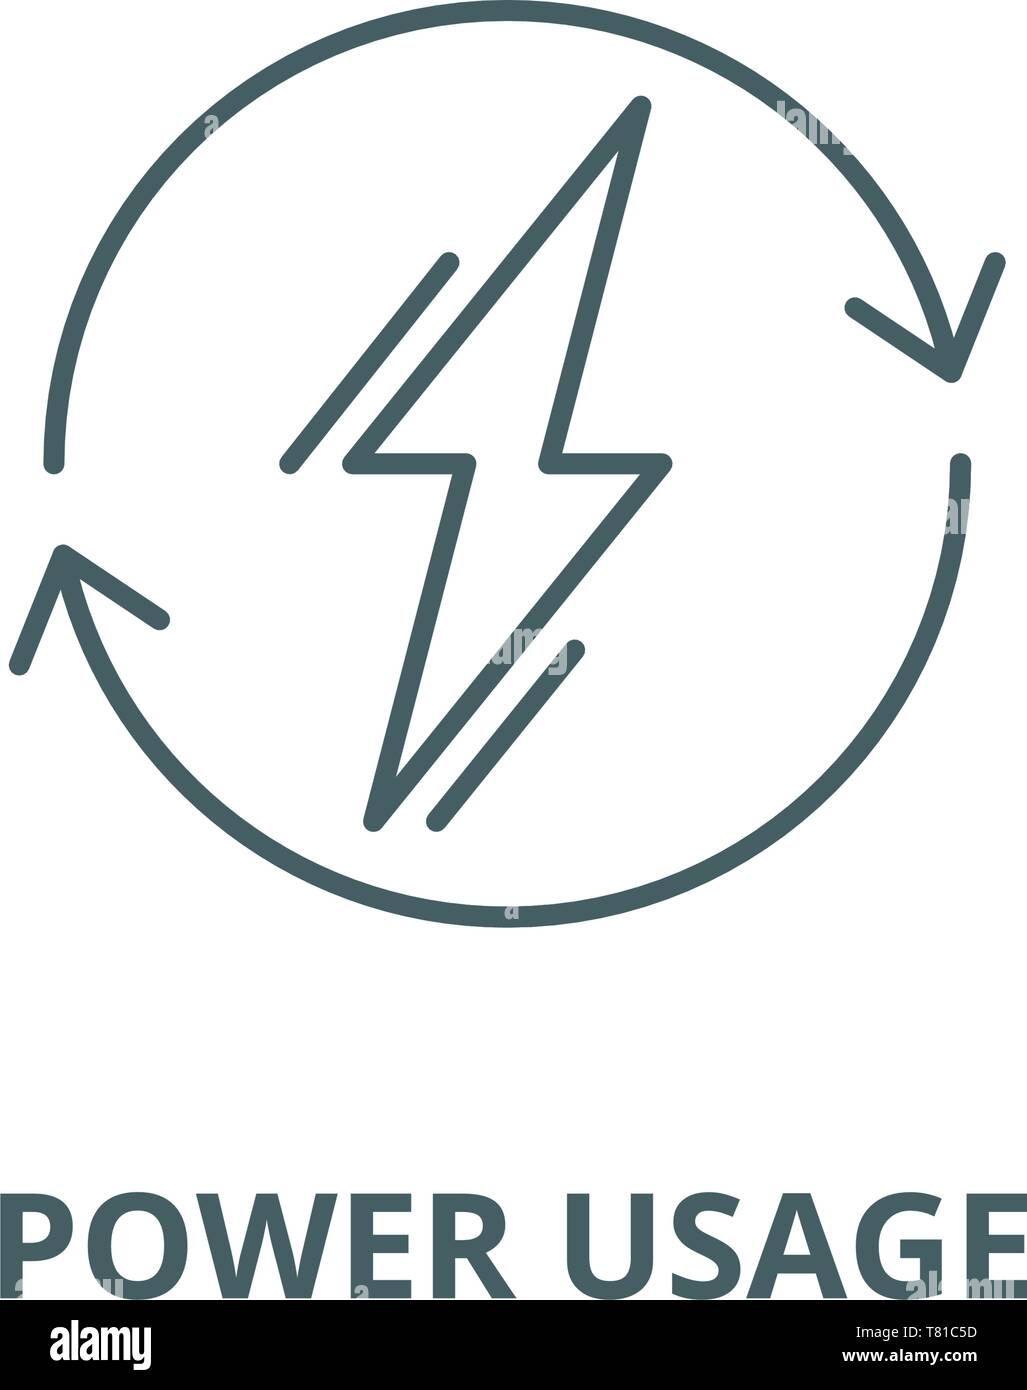 Power usage vector line icon, linear concept, outline sign, symbol - Stock Image